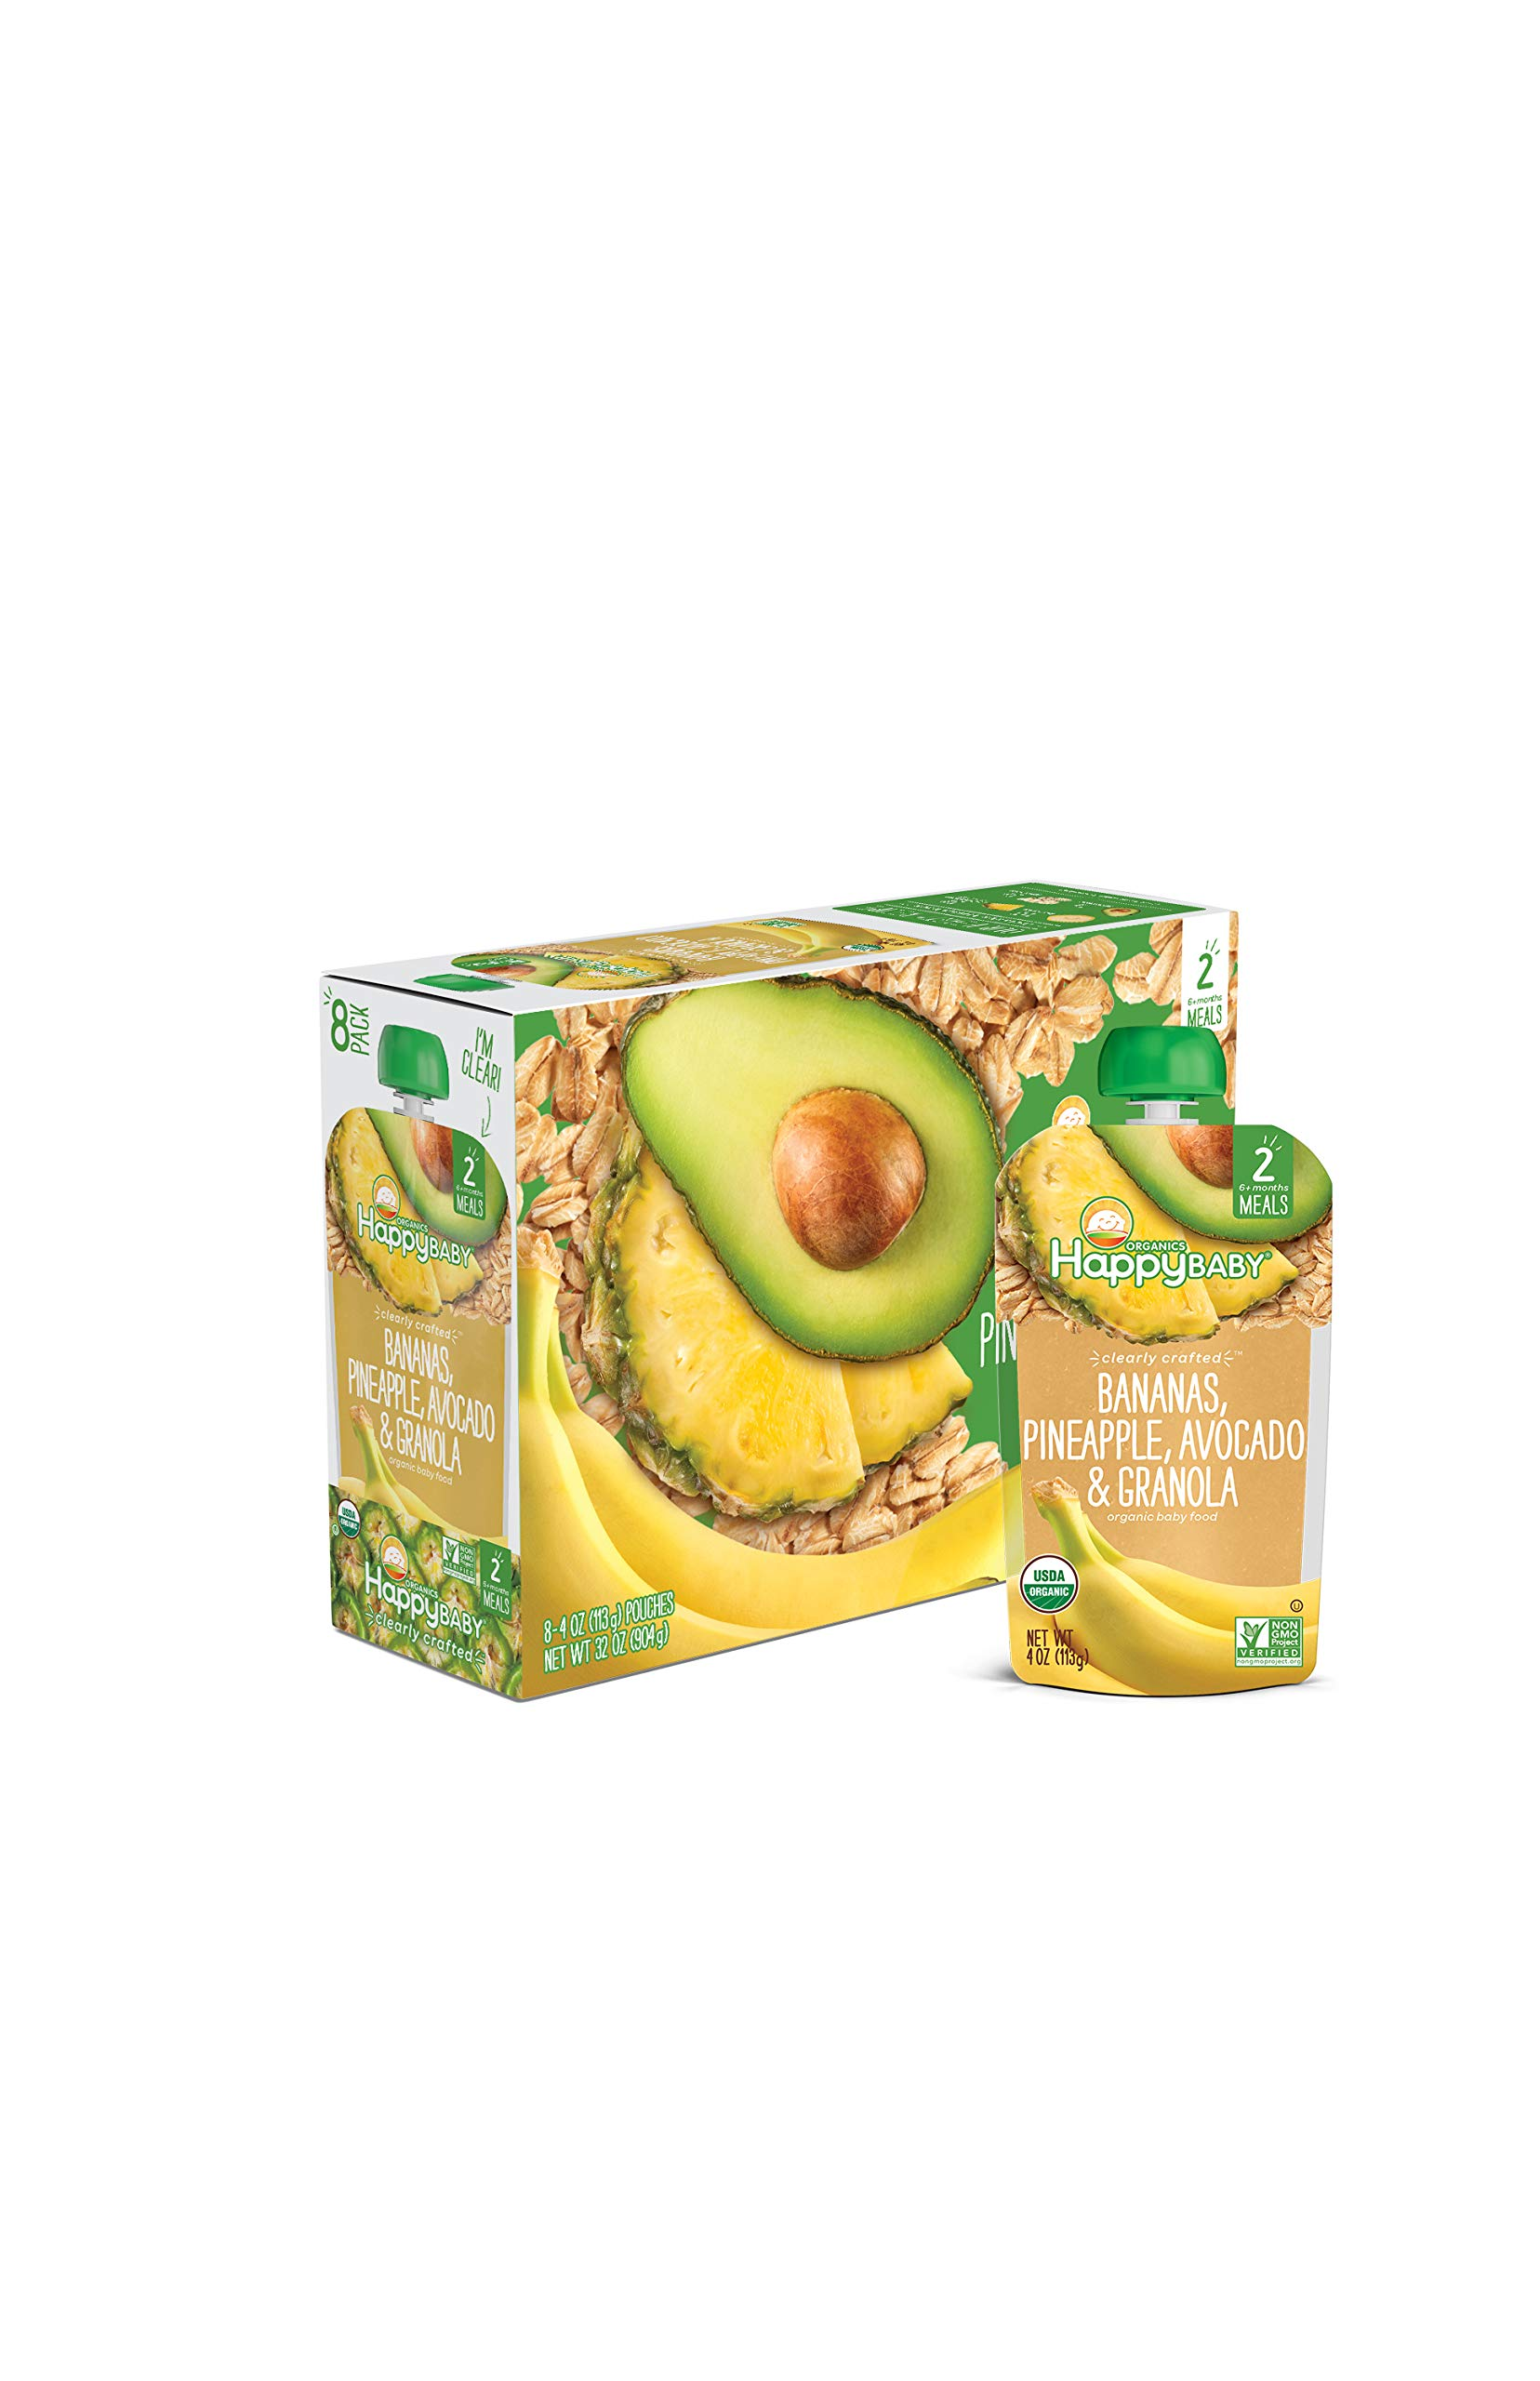 Happy Baby Organic Clearly Crafted Stage 2 Baby Food Bananas, Pineapples, Avocado & Granola, 4 Ounce Pouch (Pack of 16)